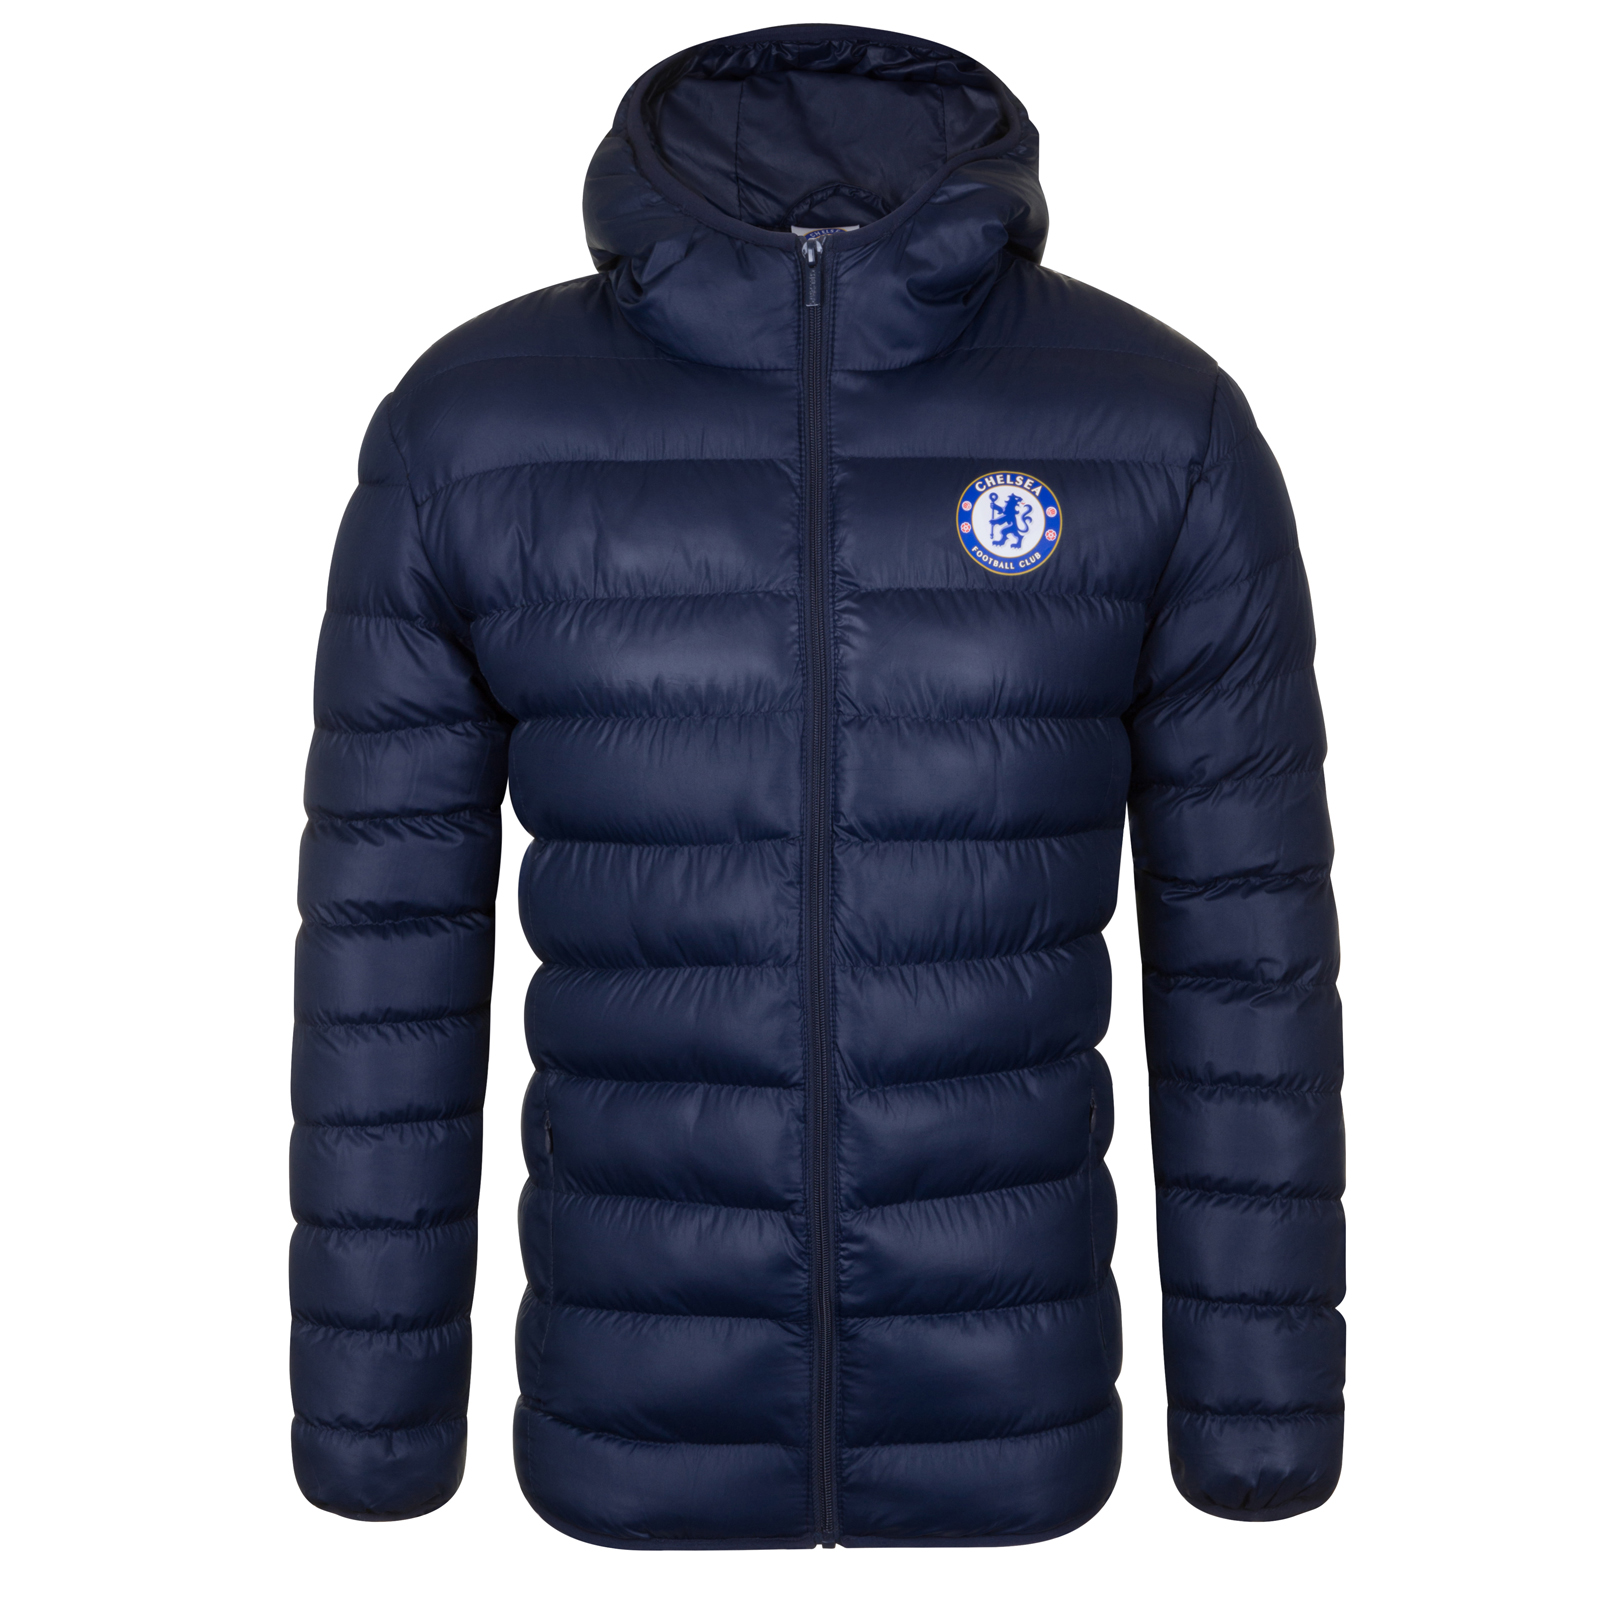 7ffc391a0 chelsea winter jacket on sale   OFF59% Discounts